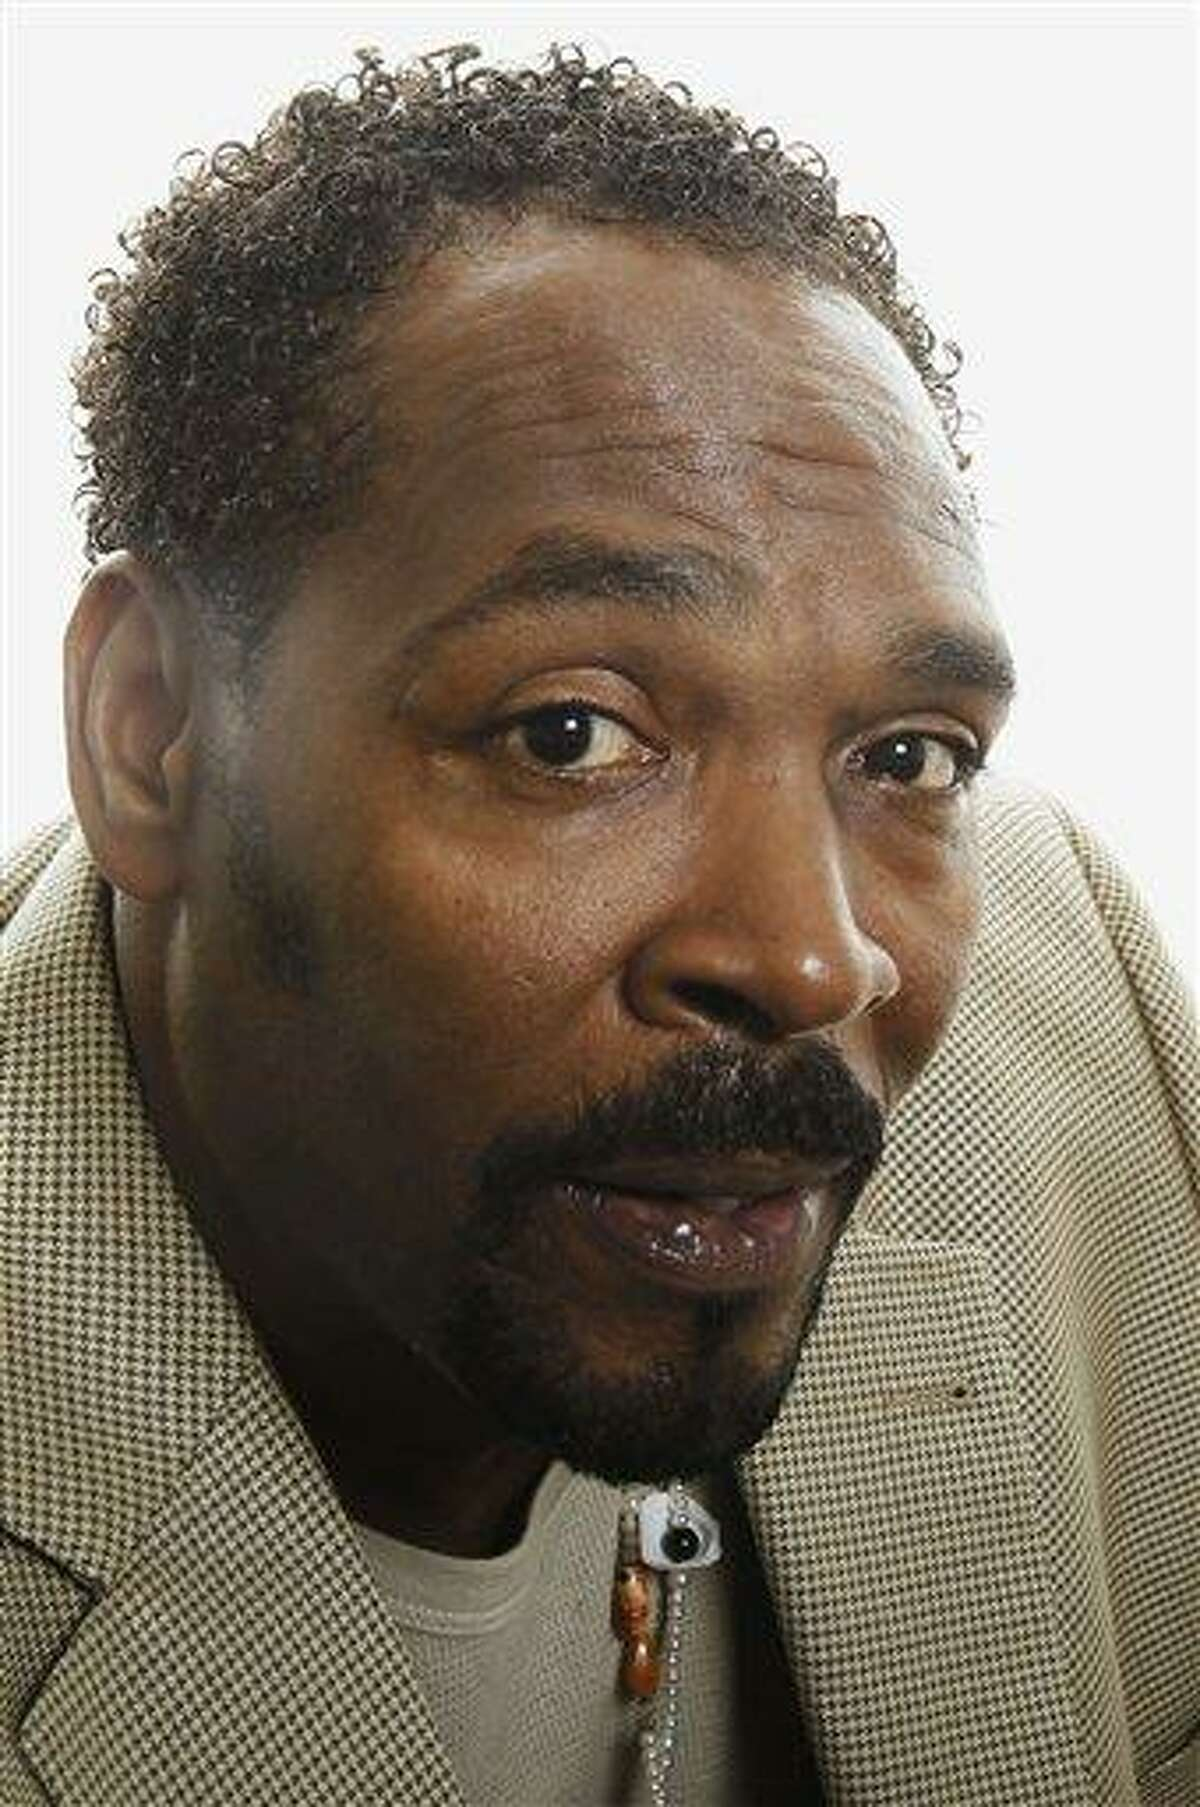 Rodney King poses for a portrait April 13 in Los Angeles. Southern California police say King's death has been ruled an accidental drowning. The county medical examiner's report shows King had numerous drugs such as PCP, cocaine and marijuana in his system when he died in June. Associated Press